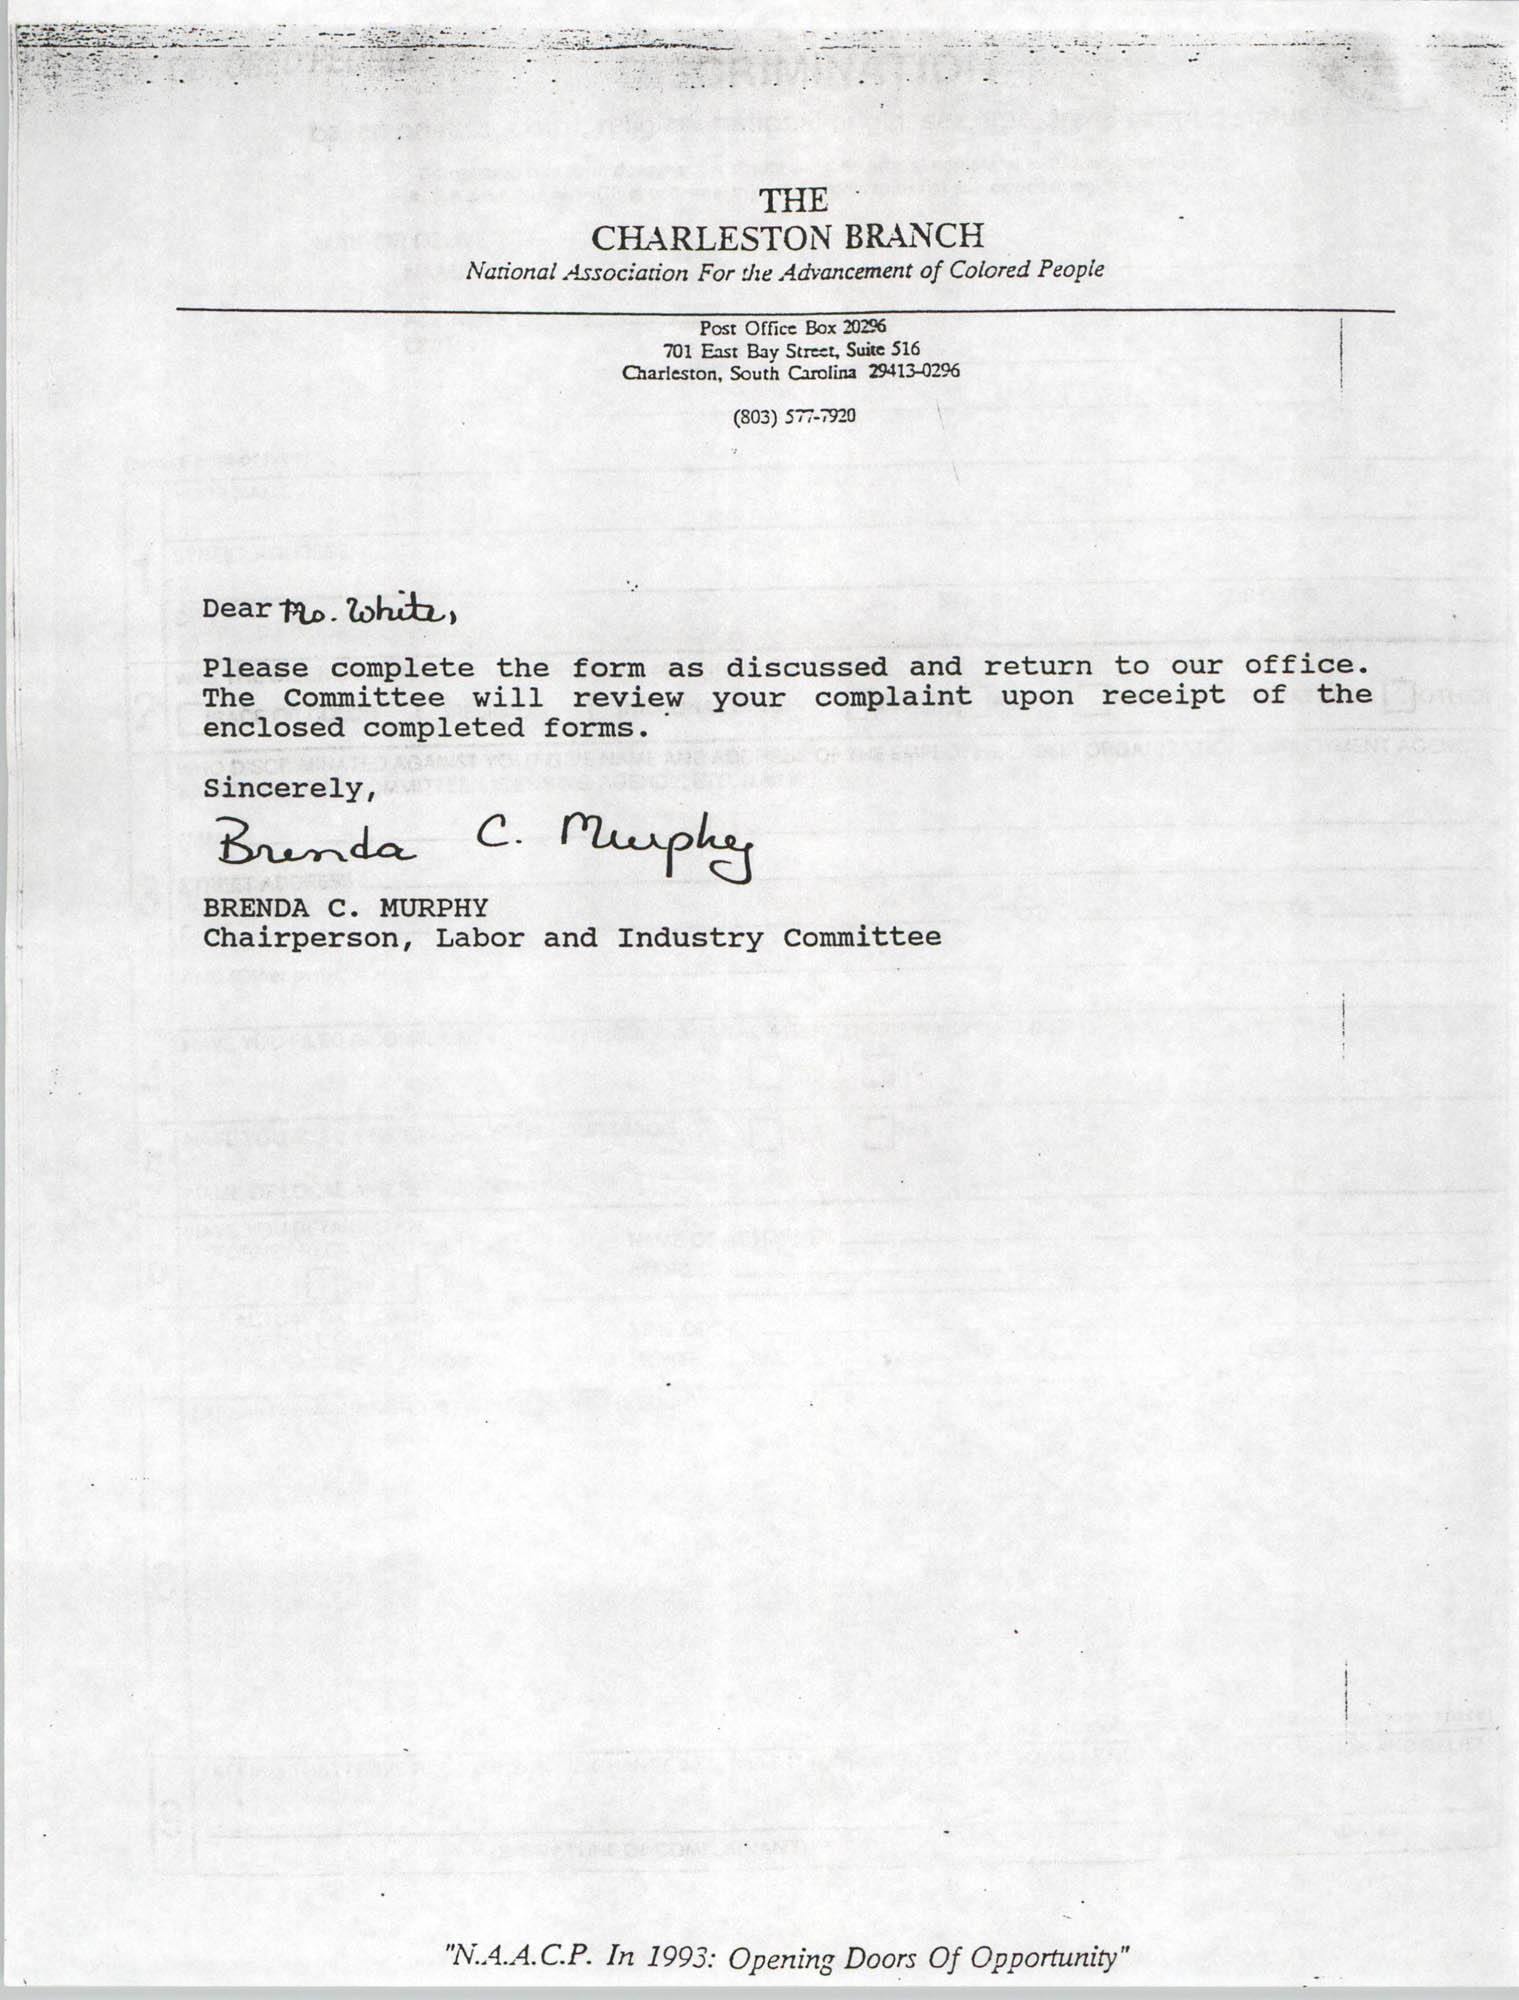 Letter from Brenda C. Murphy to Ms. White